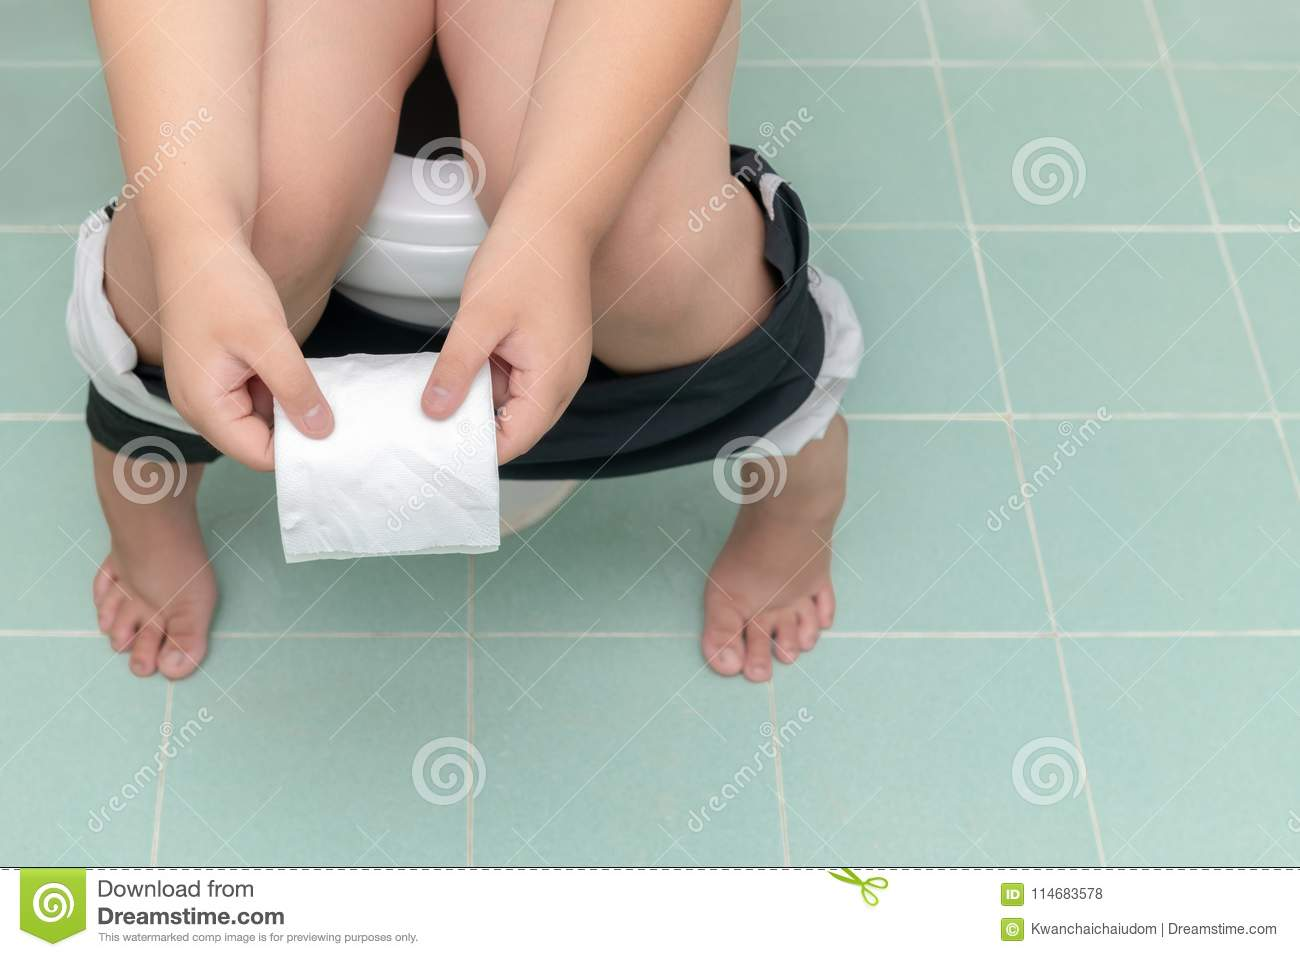 Baby Baby Sit On Toilet Stock Footage Video (100% Royalty